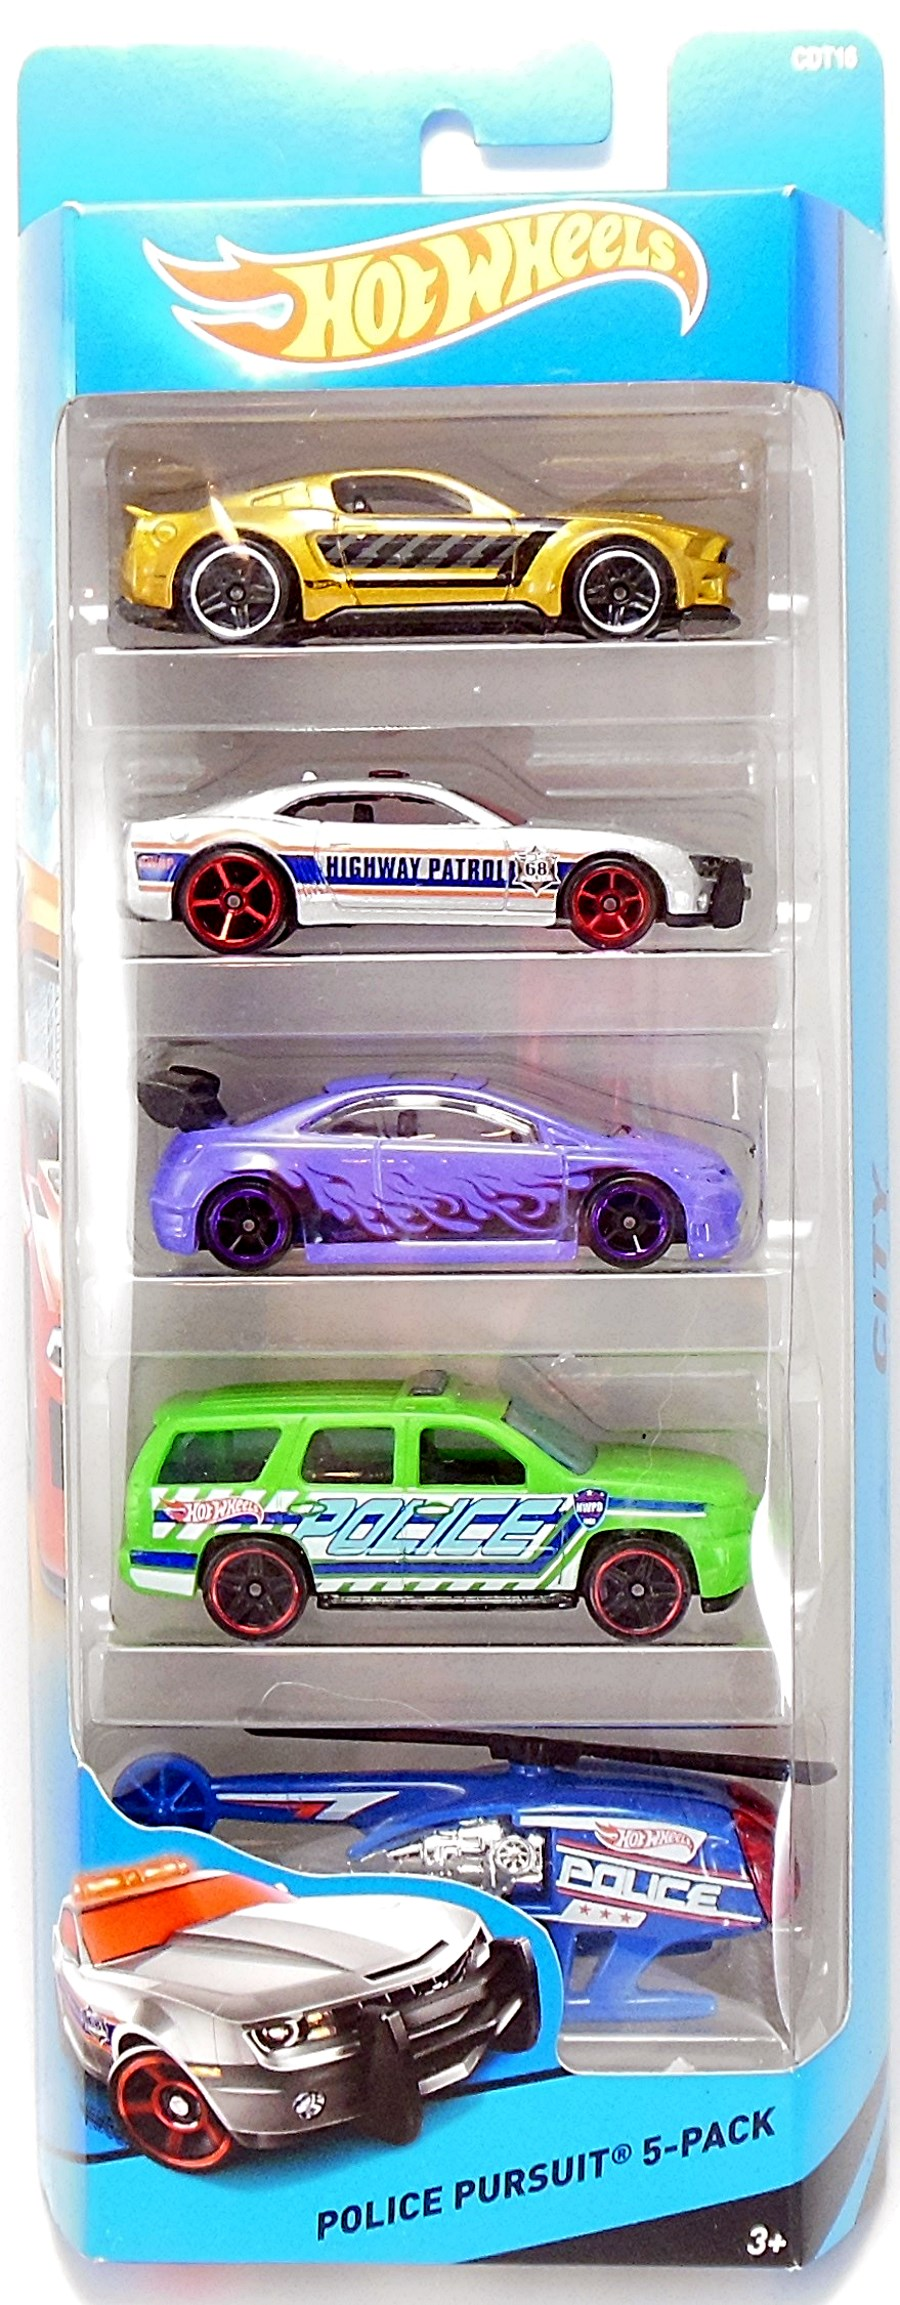 Police Pursuit 5-Pack (2015)